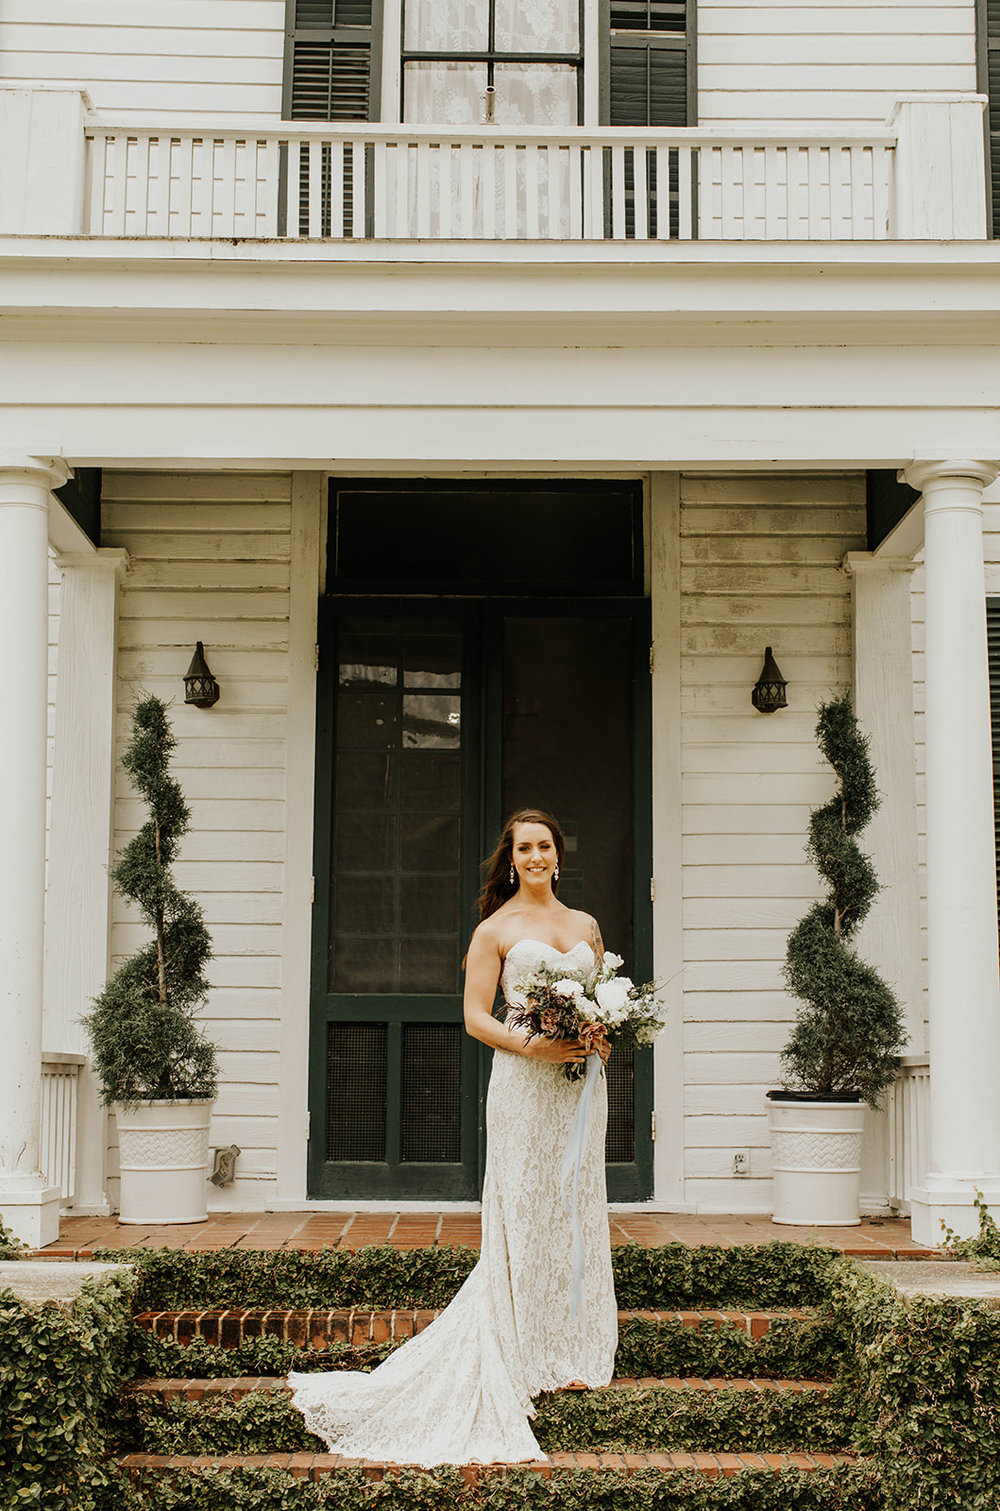 savannah-bridal-shop-i-and-b-bride-april-ti-adora-ella-belle-jacksonville-bride-lyndsey-anne-photography-savannah-bridal-boutique-savannah-wedding-gowns-10.jpg